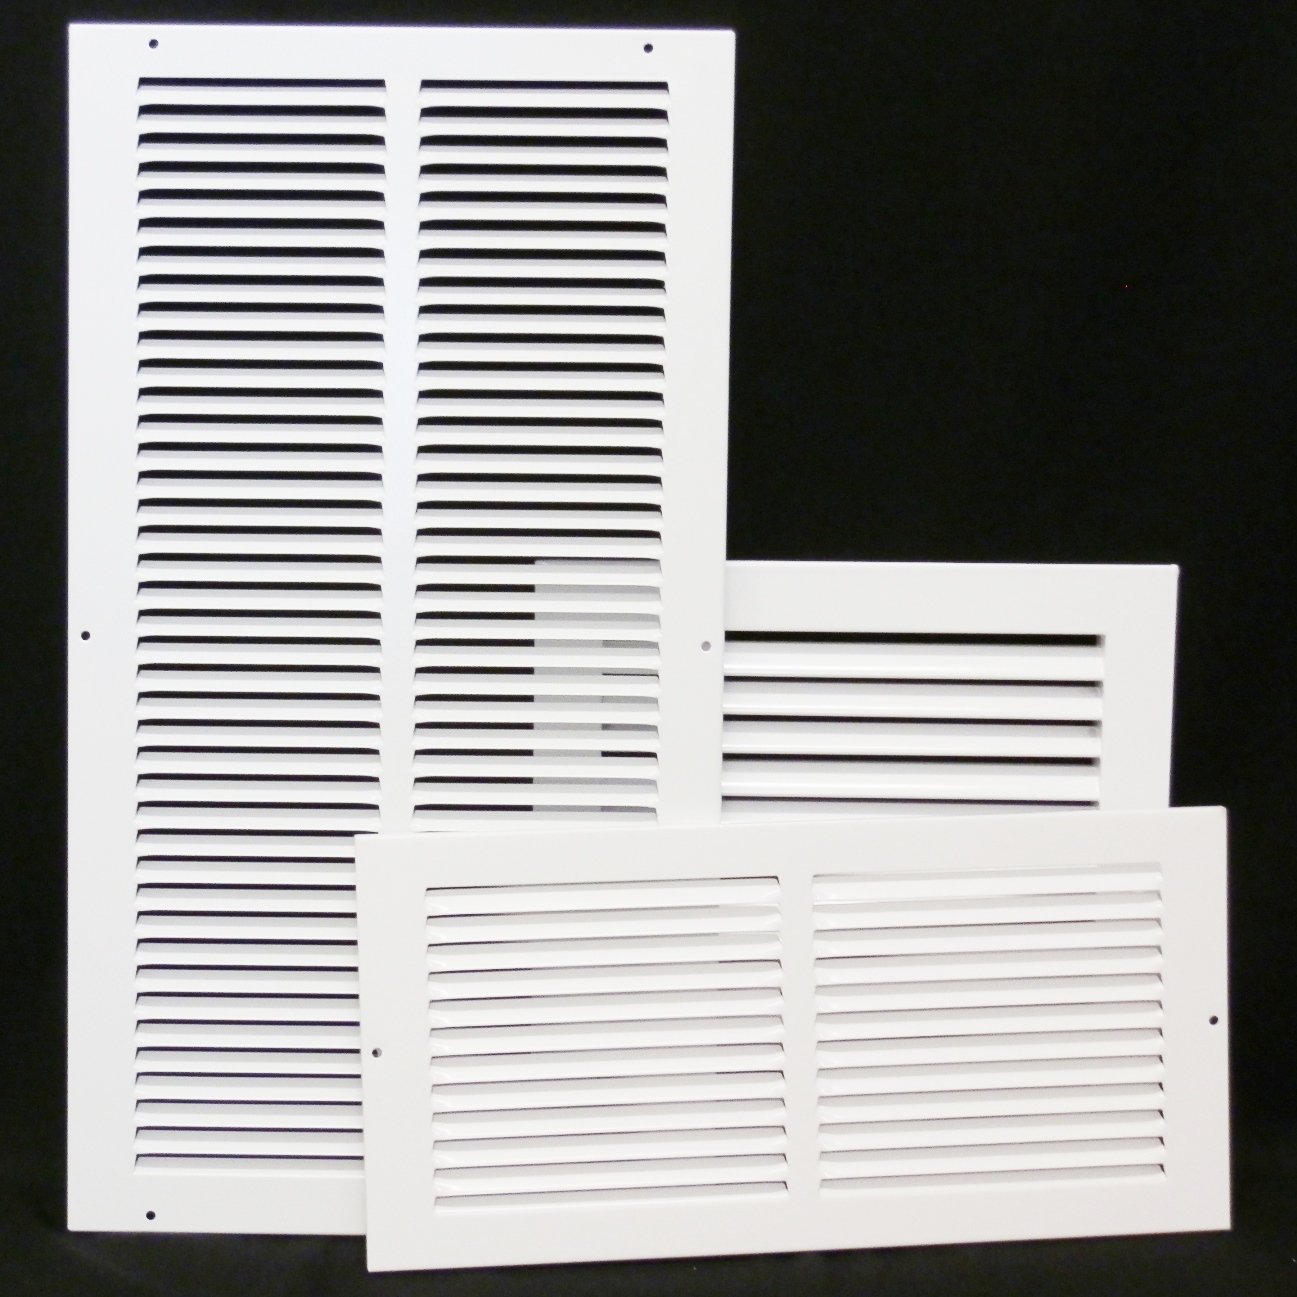 30'' X 14 Steel Return Air Filter Grille for 1'' Filter - Removable Face/Door - HVAC DUCT COVER - Flat Stamped Face - White [Outer Dimensions: 32.5''w X 16.5''h] by HVAC Premium (Image #4)